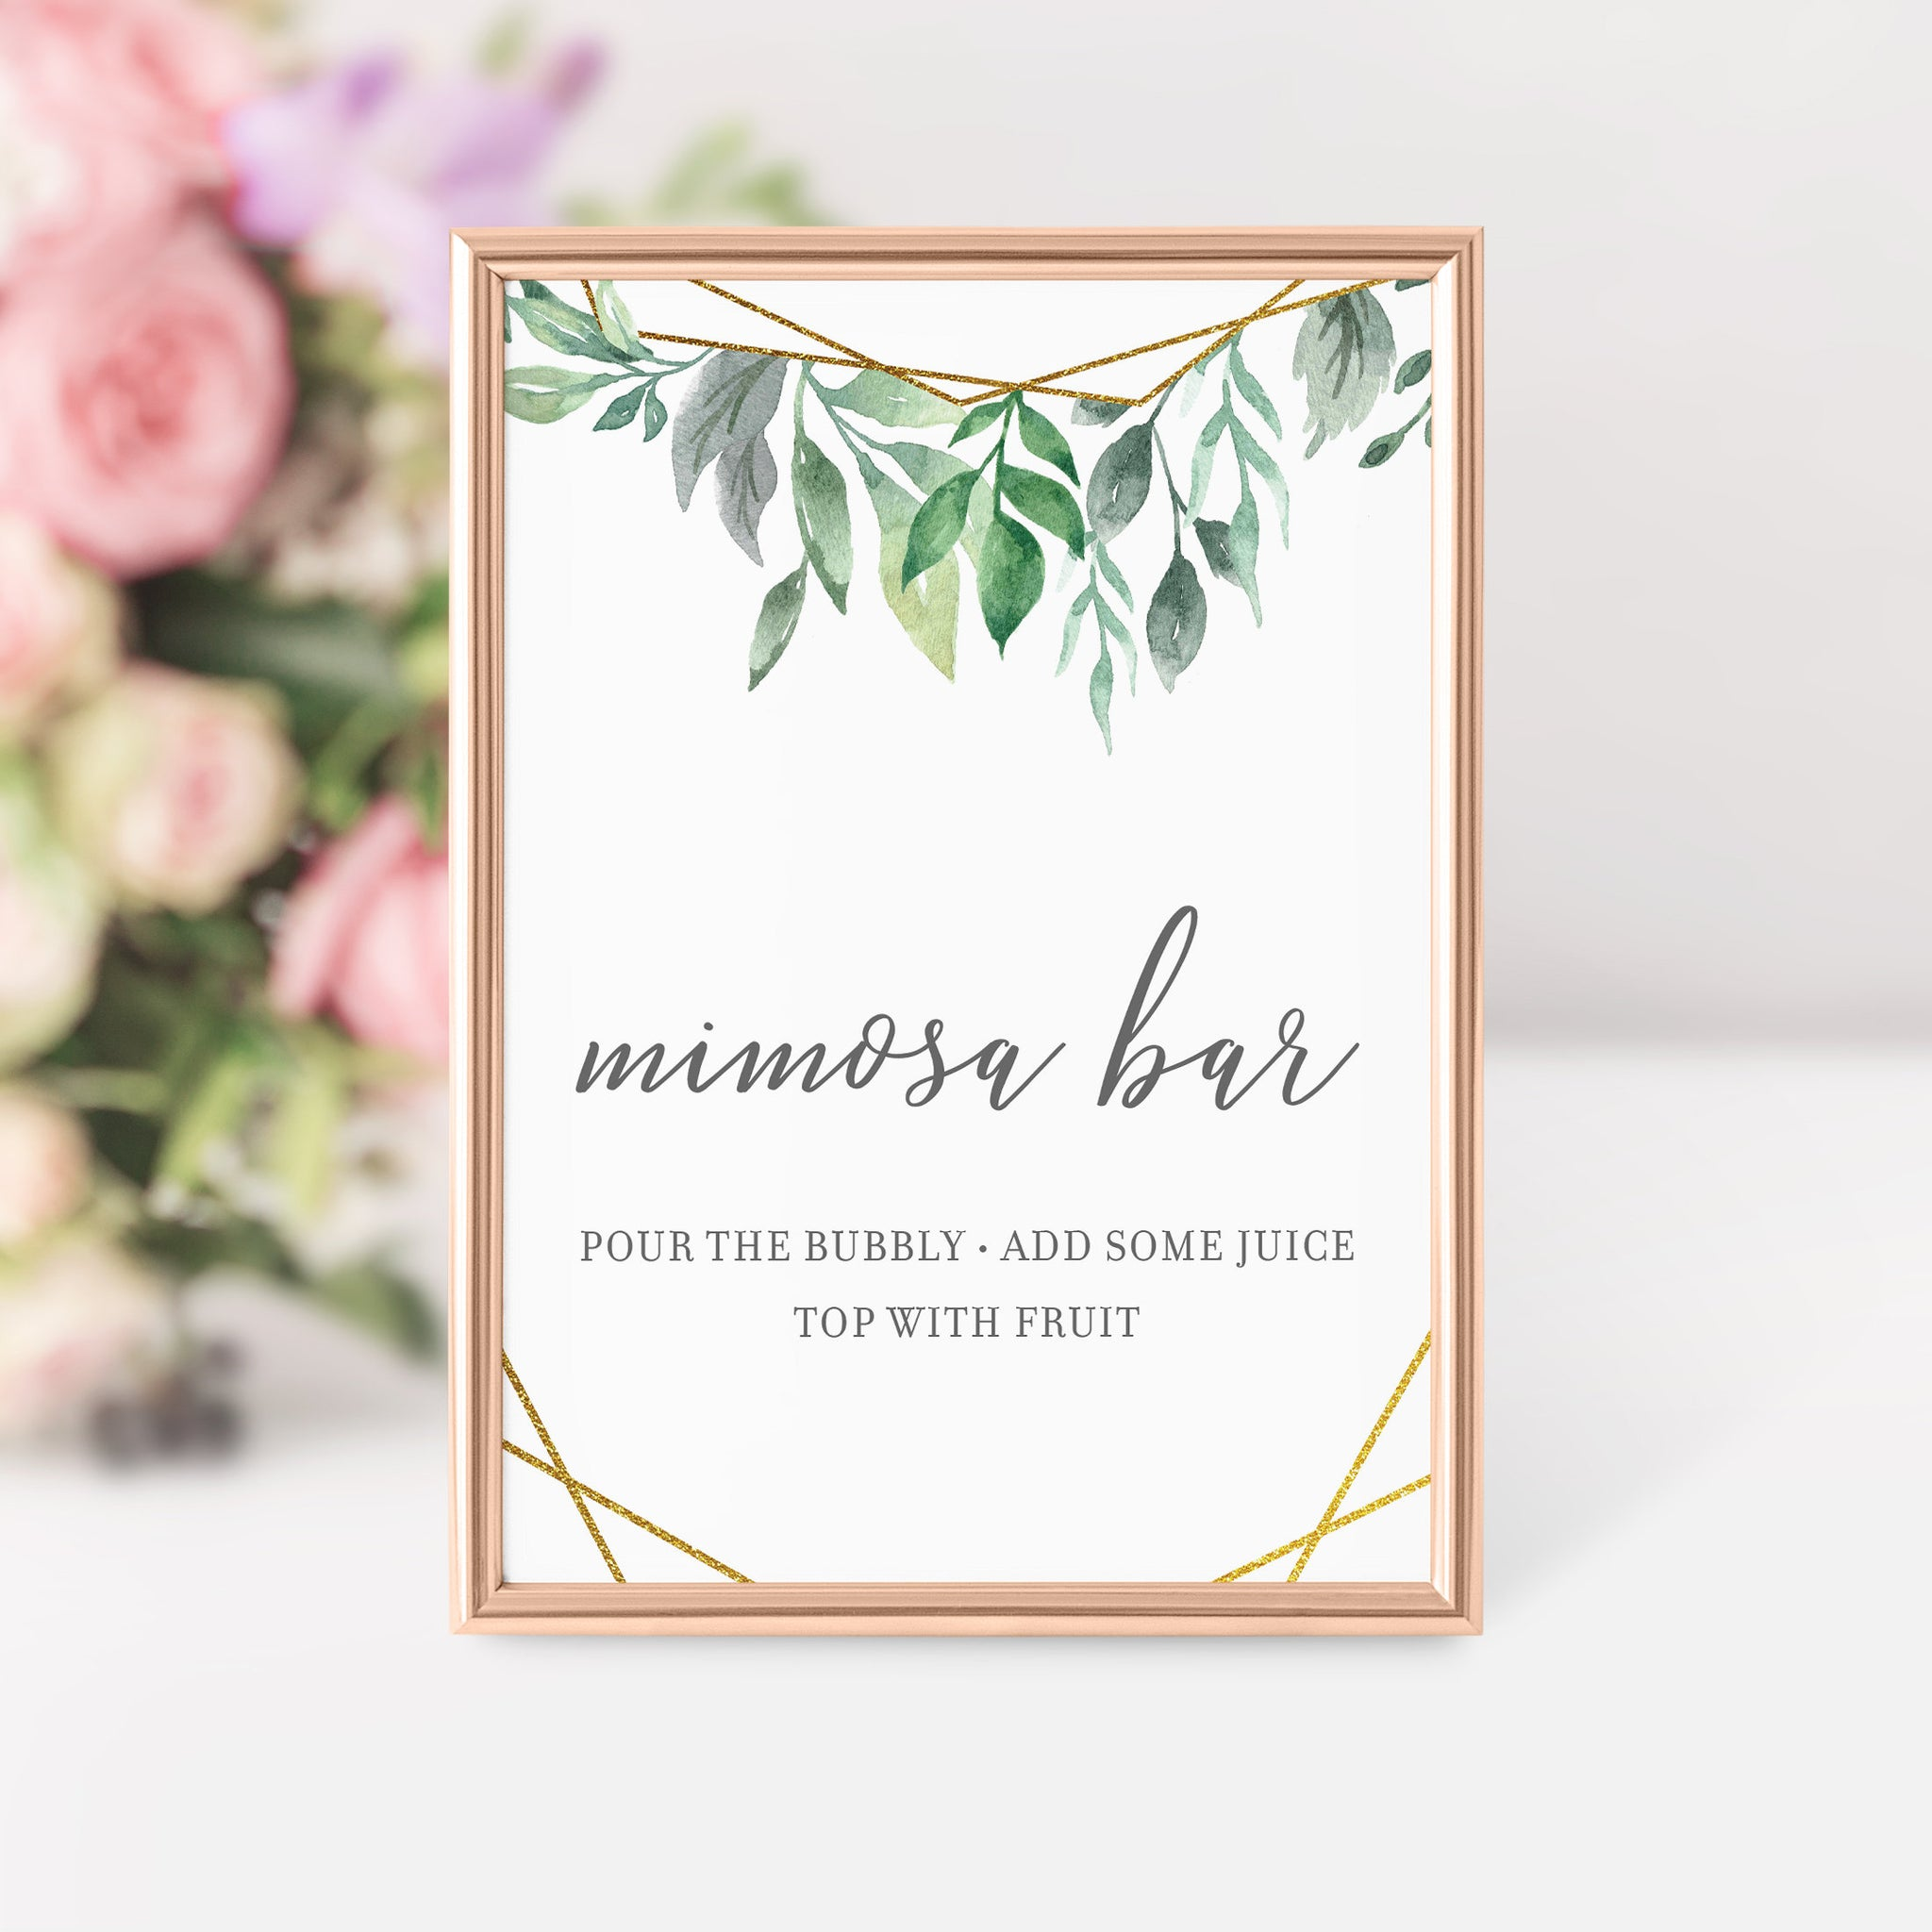 Geometric Gold Greenery Mimosa Bar Printable Sign INSTANT DOWNLOAD, Birthday, Bridal Shower, Baby Shower, Wedding Decorations - GFG100 - @PlumPolkaDot